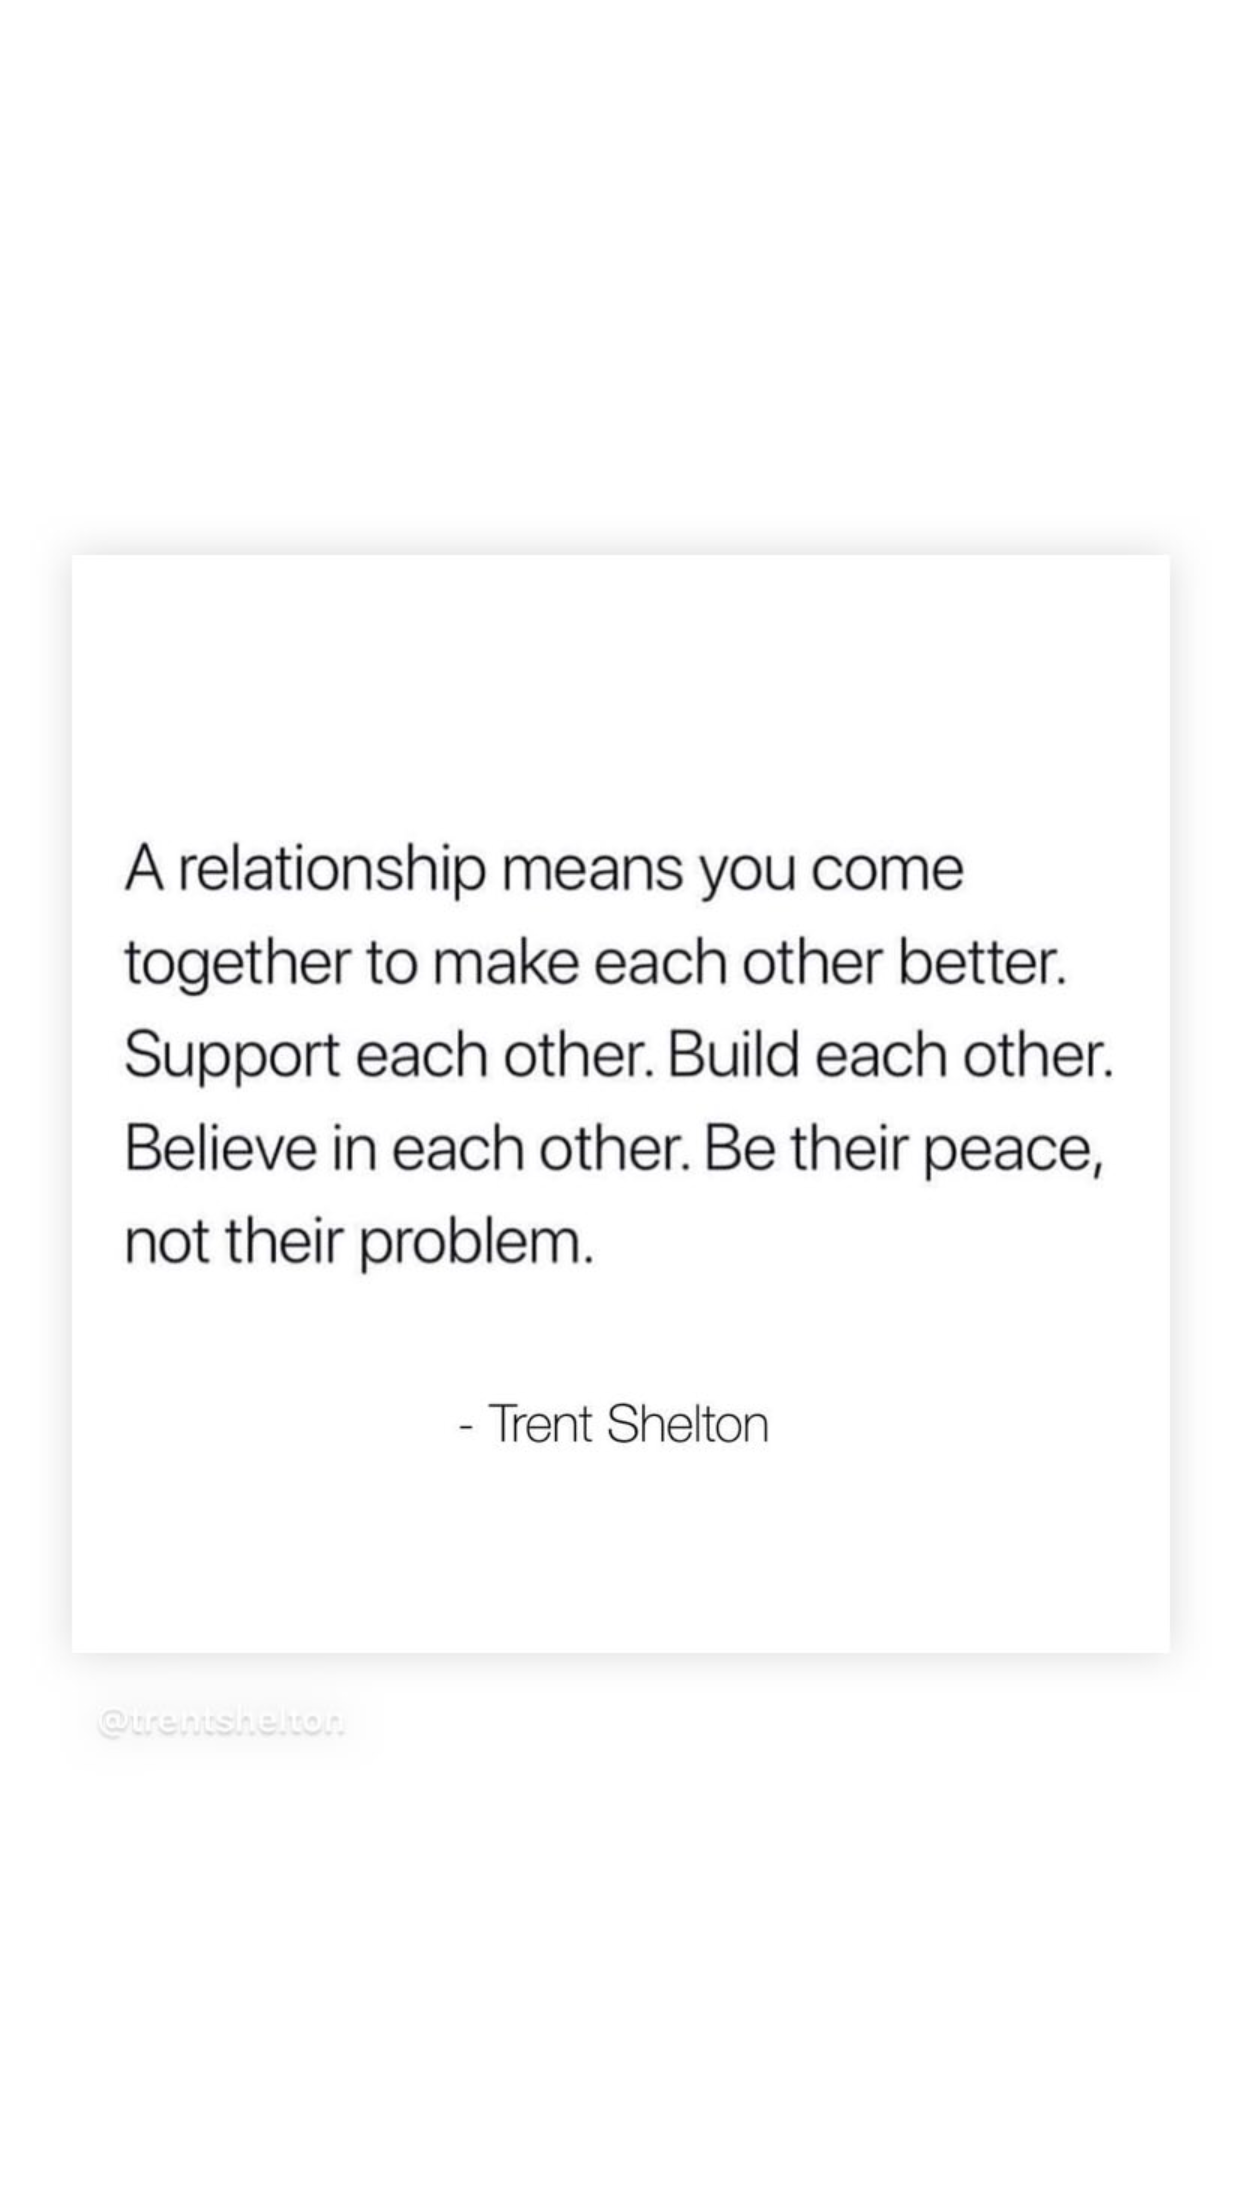 Pin By Tracy Robillard On Facts Support Quotes Relationship Love And Support Quotes Support Quotes